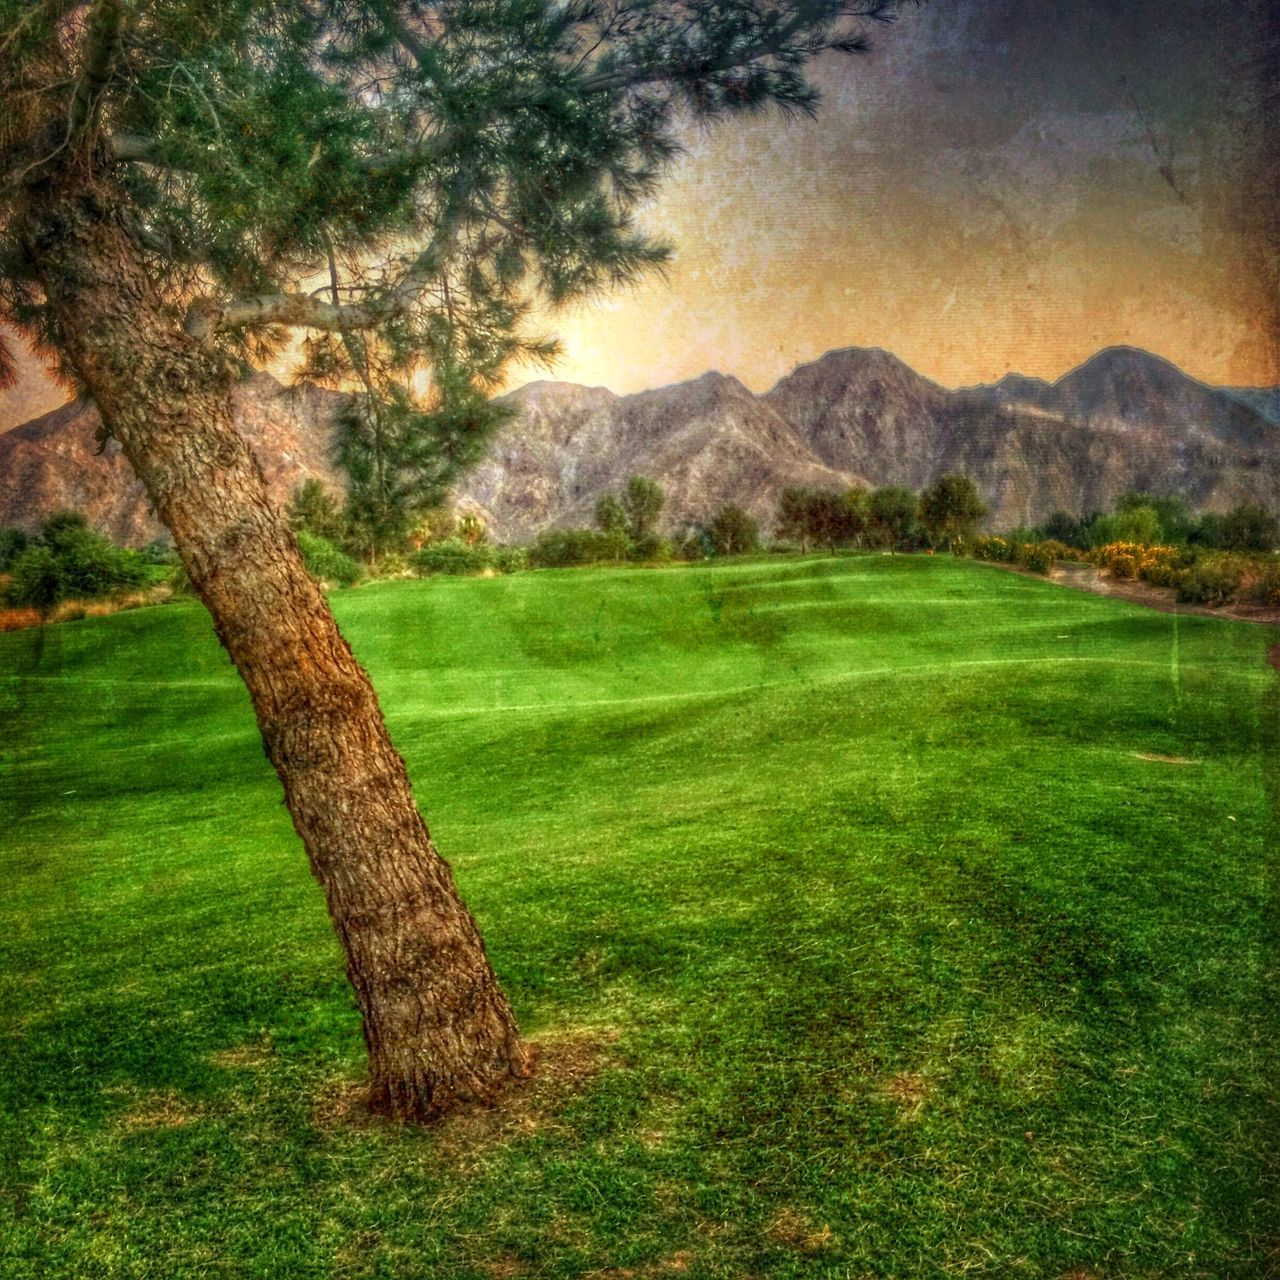 tree, grass, nature, scenics, tranquil scene, beauty in nature, mountain, tranquility, no people, landscape, outdoors, day, field, mountain range, sky, golf course